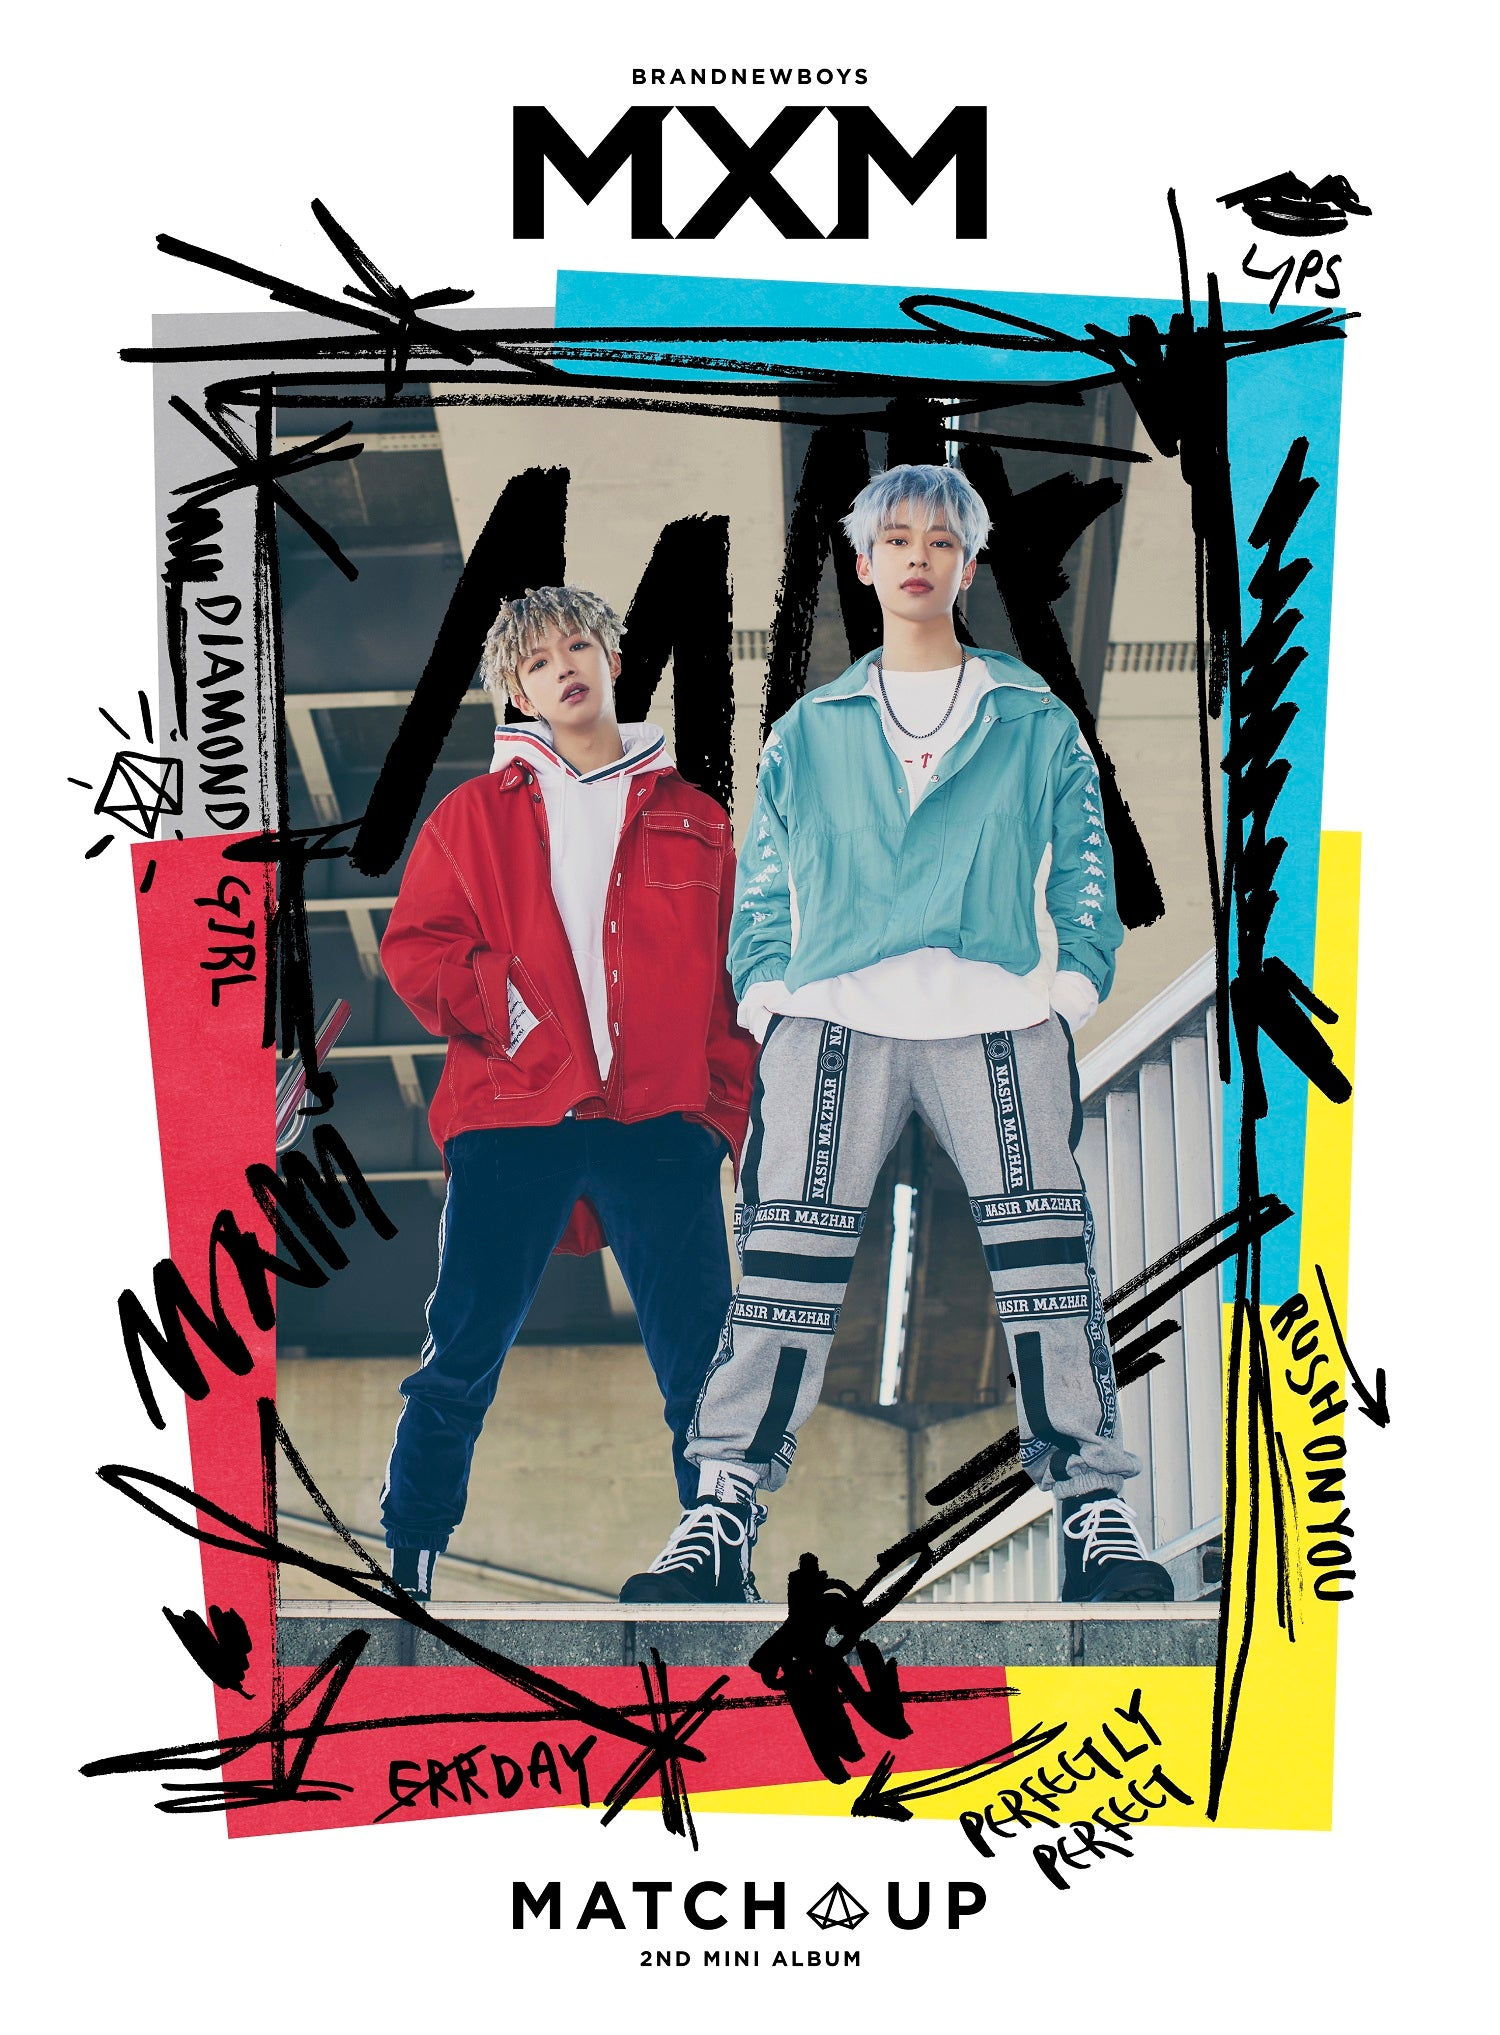 MXM (BRANDNEW BOYS) 2ND MINI ALBUM 'MATCH UP' + POSTER